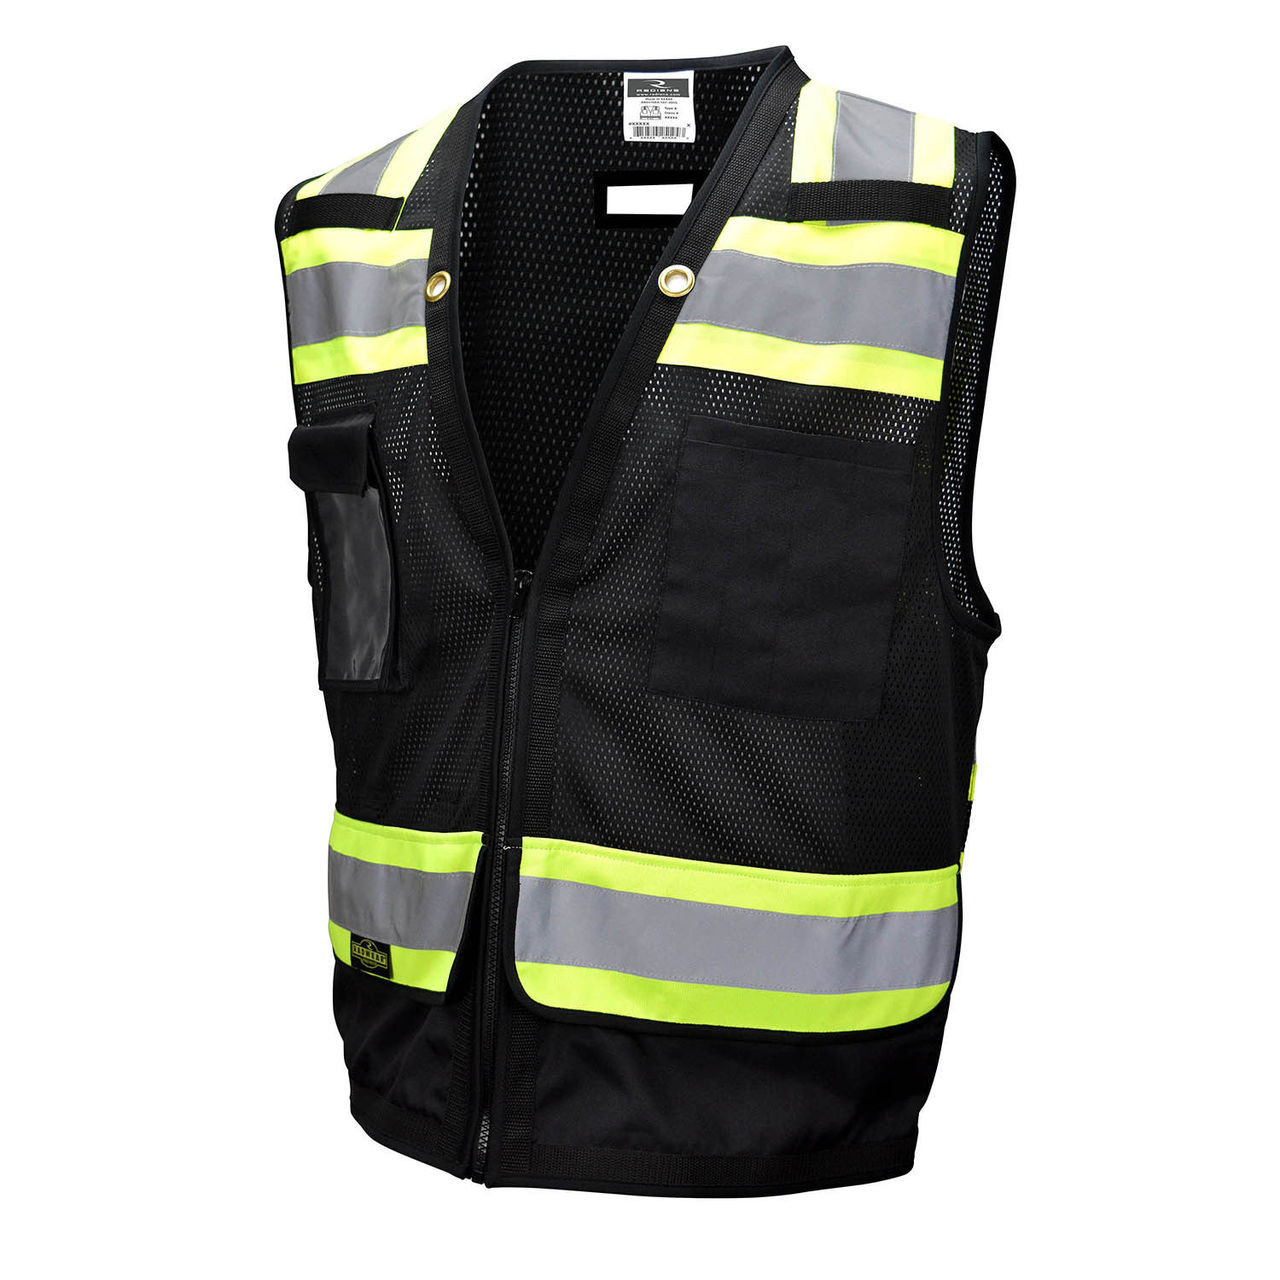 b362d5c785a Radians SV59-1ZBM Type O and Class 1 Heavy Duty Surveyor Safety Vest ...